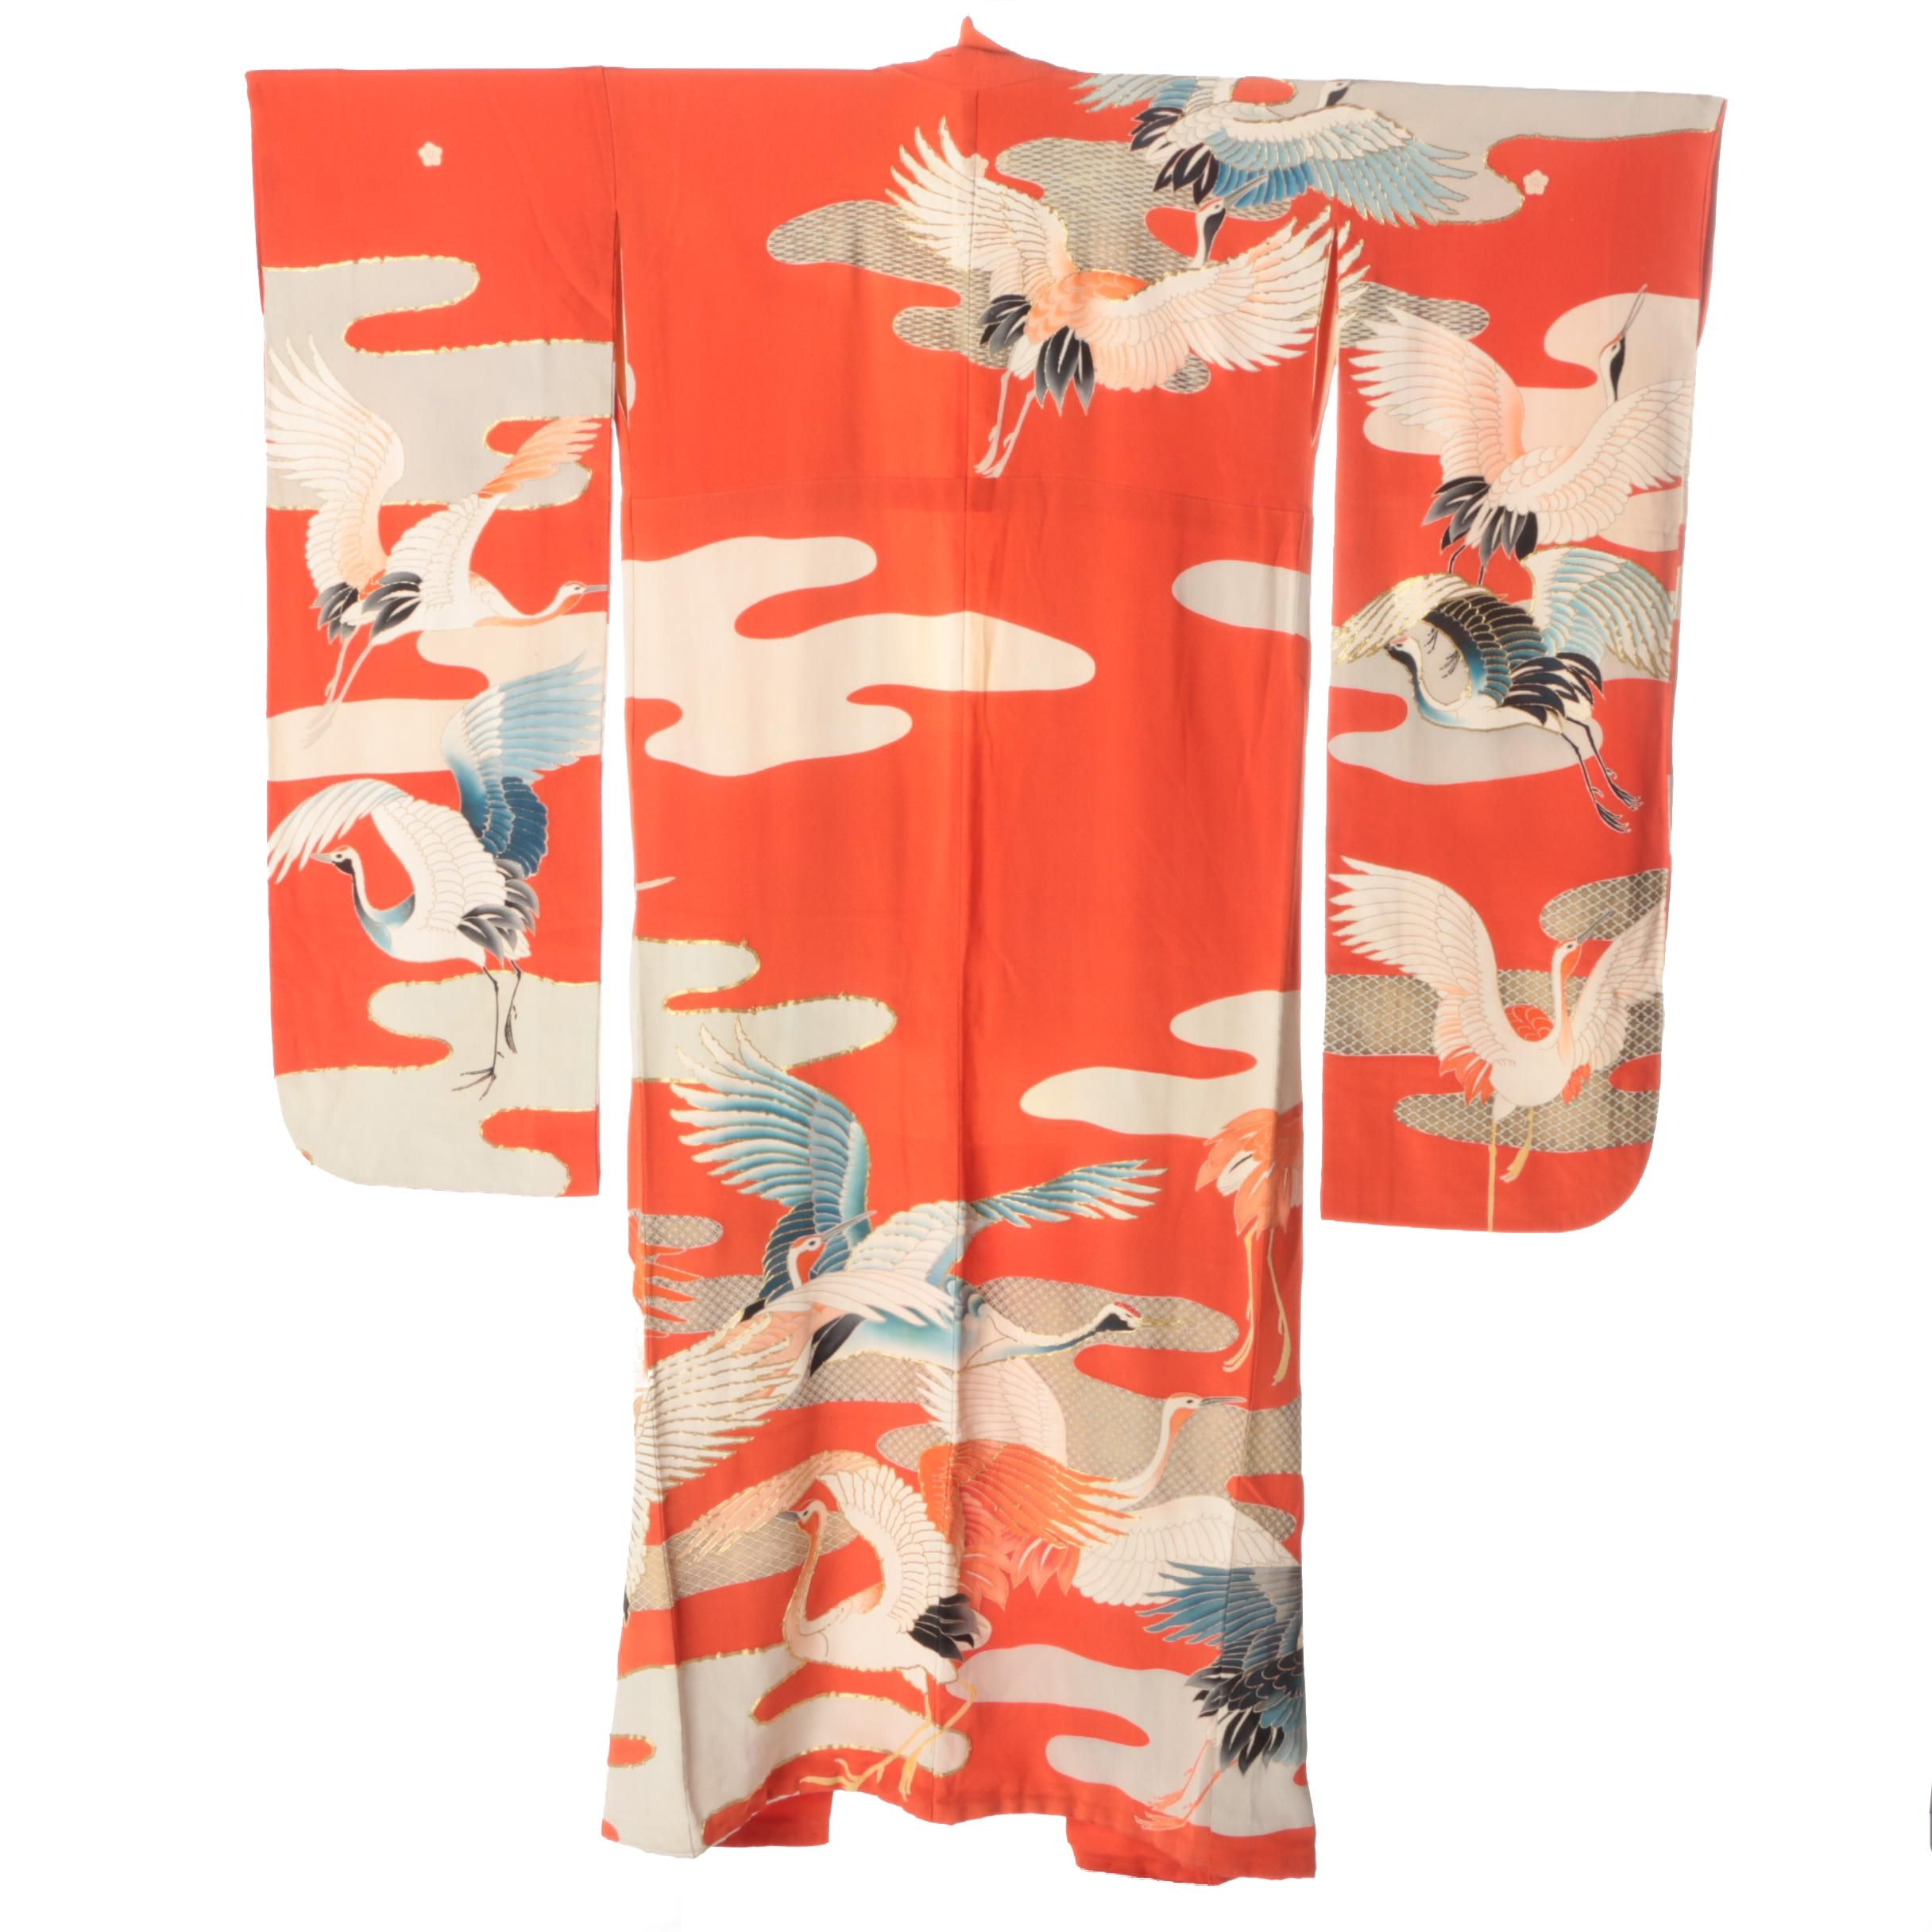 Circa 1910s Antique Japanese Silk Formal Crested Kakashita Furisode Kimono